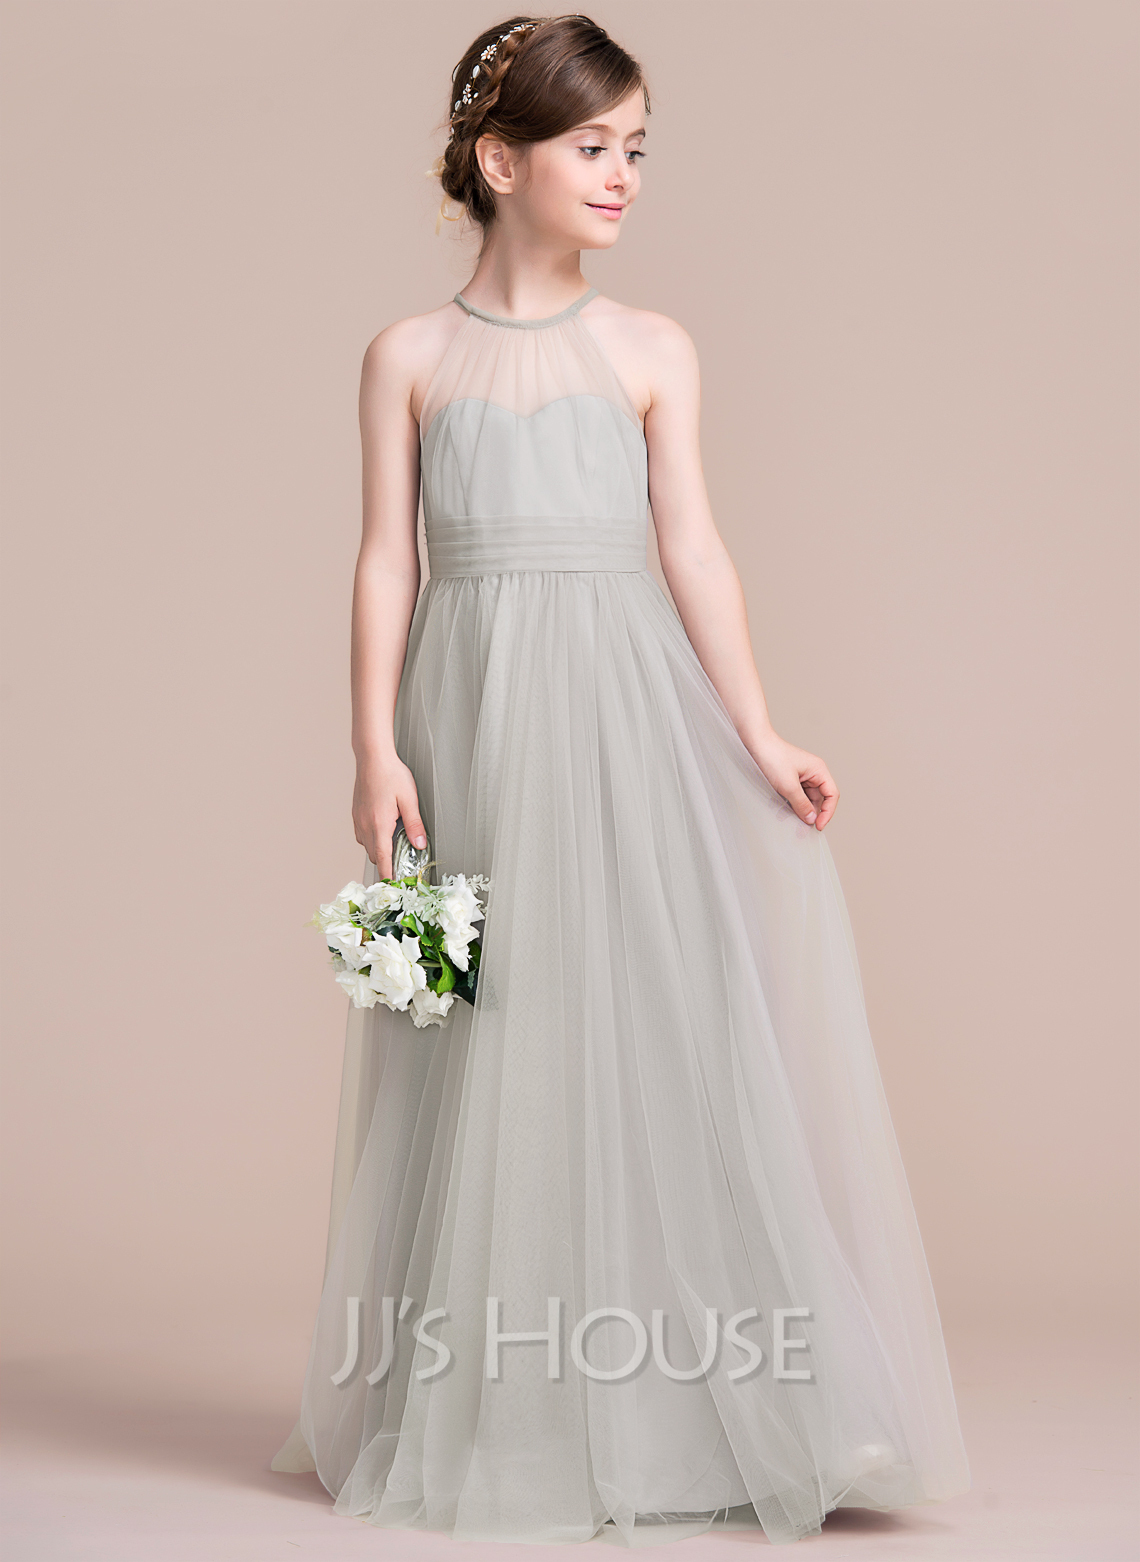 A Line Princess Scoop Neck Floor Length Tulle Junior Bridesmaid Dress With Ruffle g jjs house wedding dresses Junior Bridesmaid Dresses Loading zoom